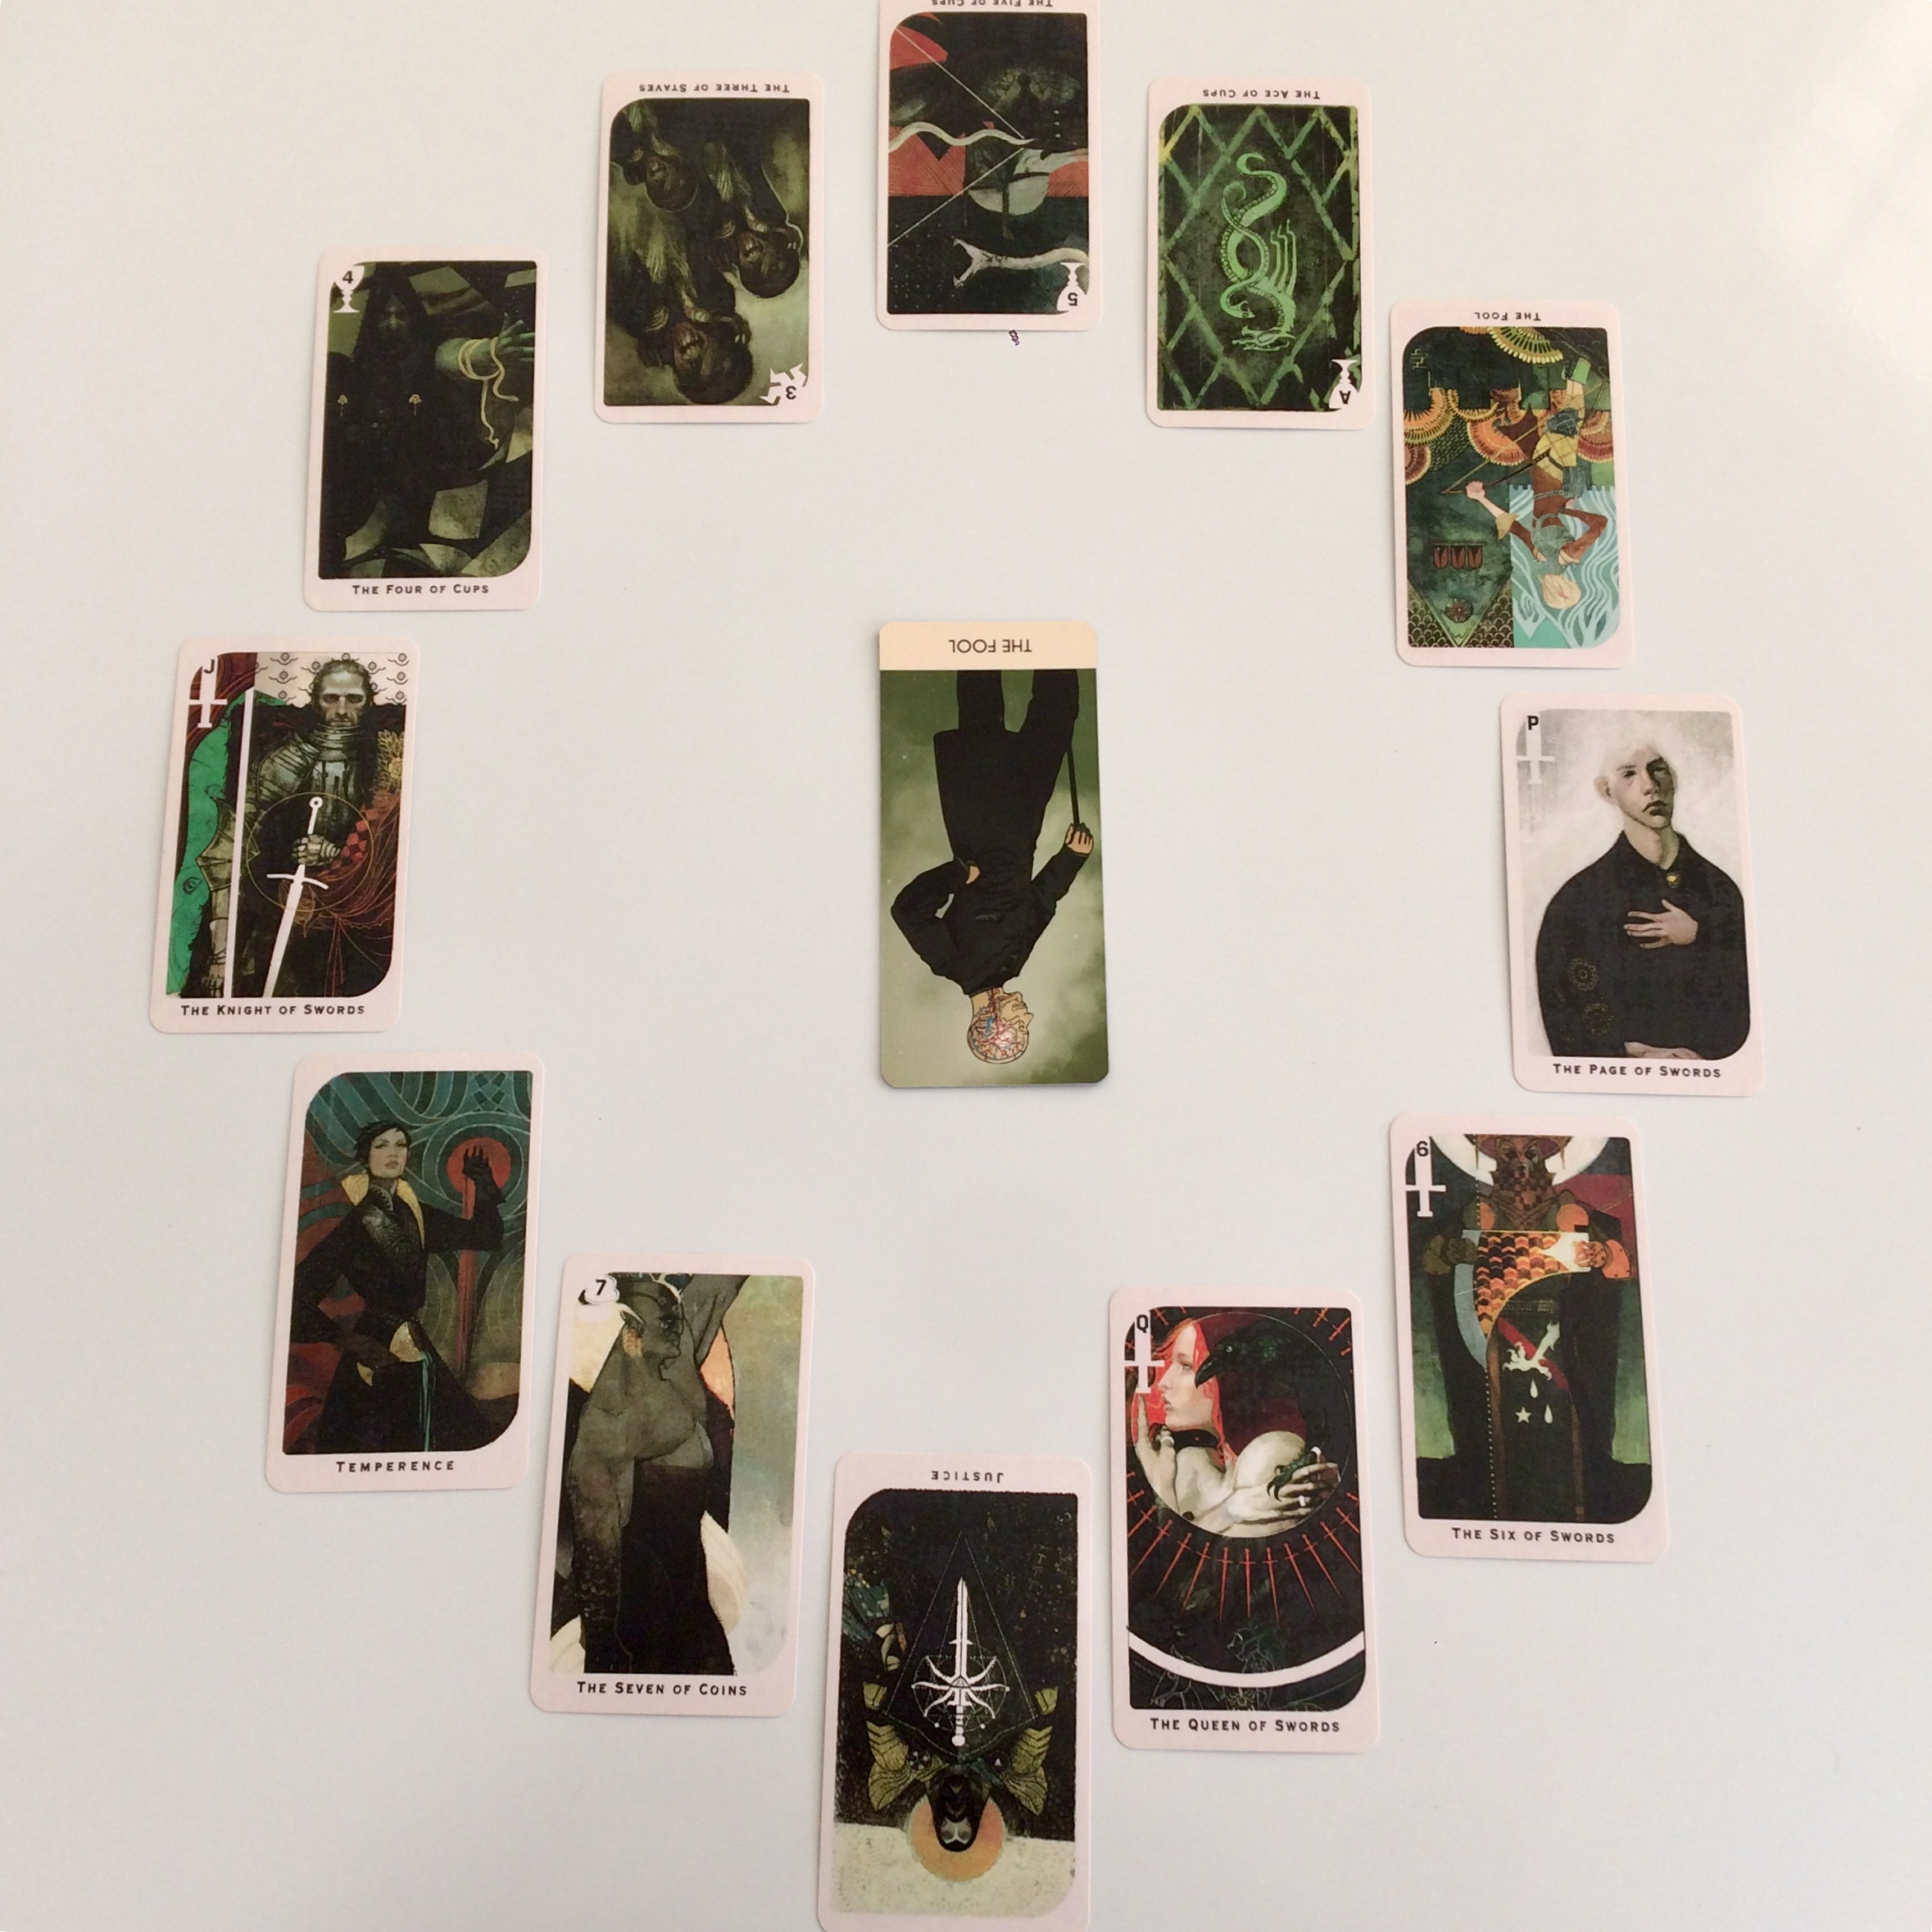 Astrological spread with  A Wicked Pack of Cards  and Dragon Age Inquisition Tarot